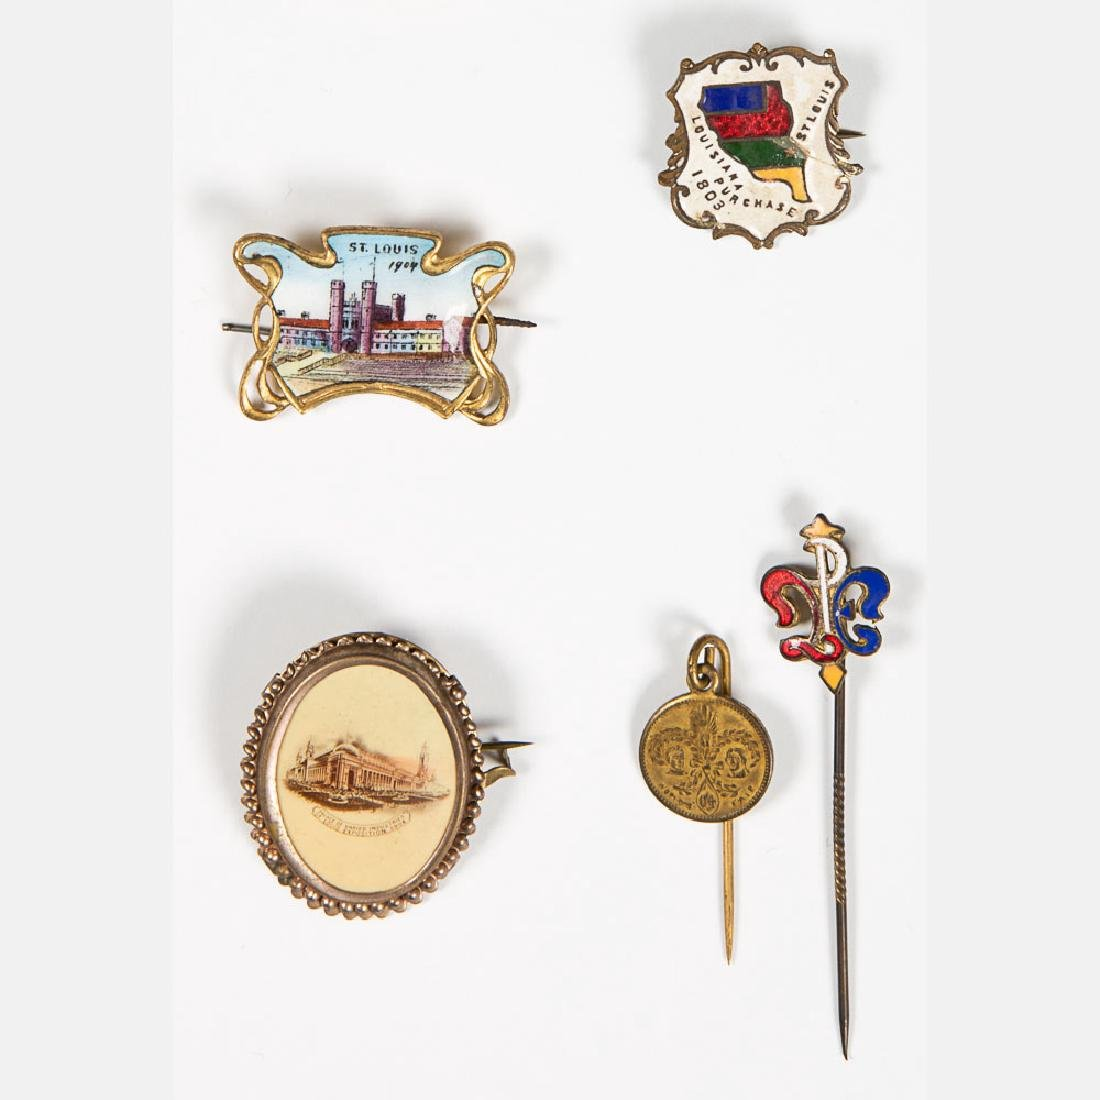 A Miscellaneous Collection of Enameled and Metal Pins - 5